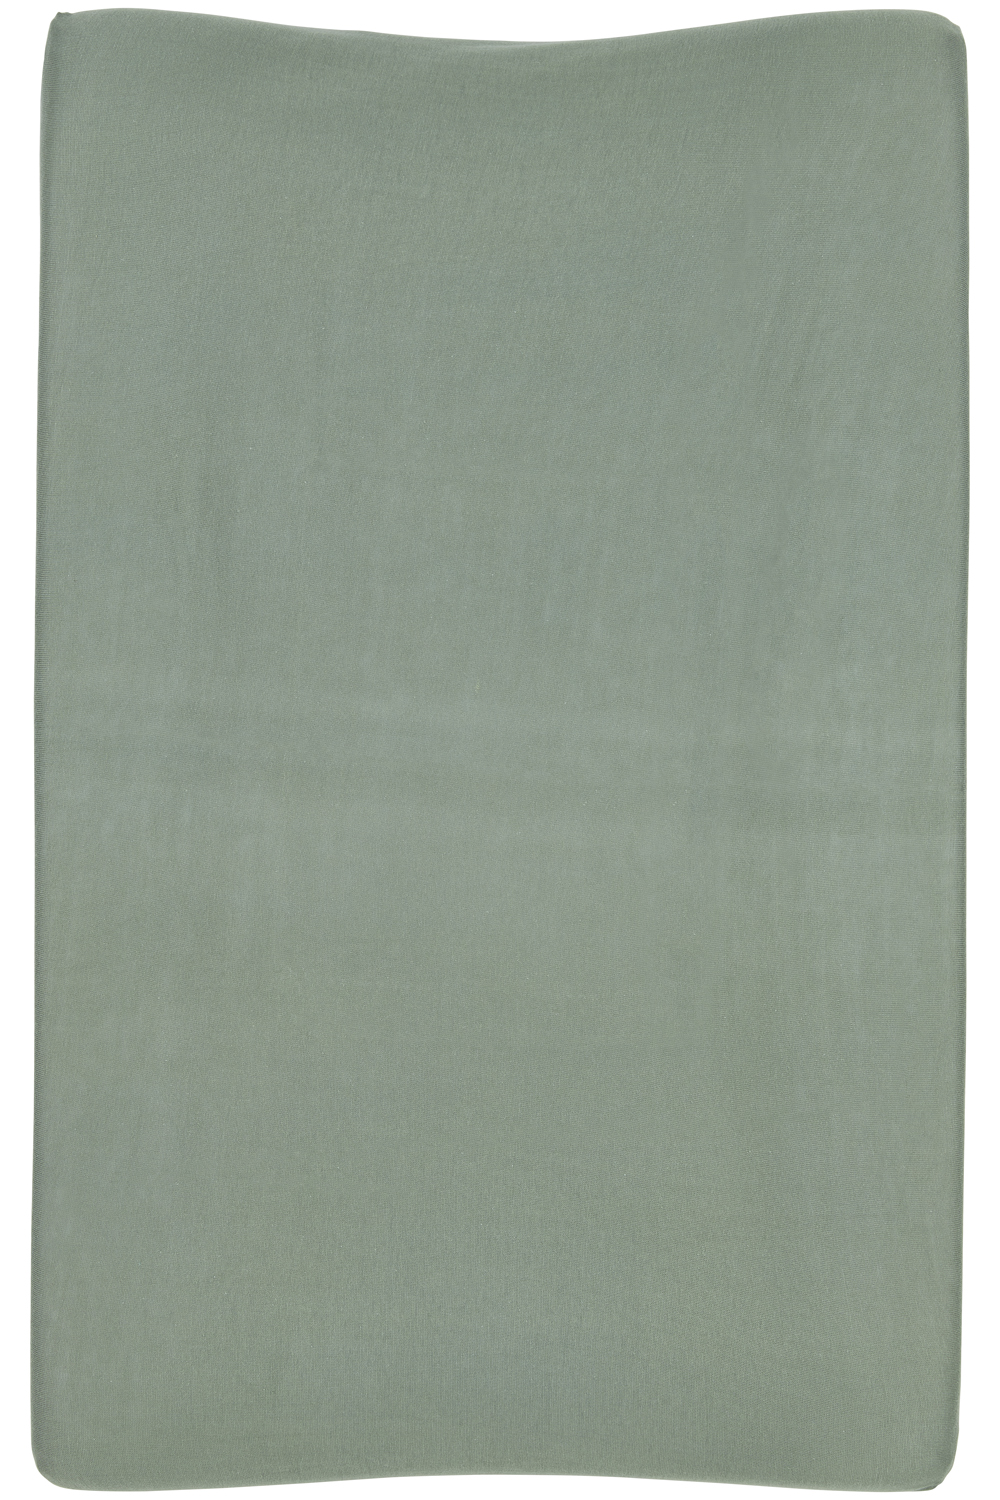 Aankleedkussenhoes Basic Jersey 2-Pack - Forest Green - 50x70cm